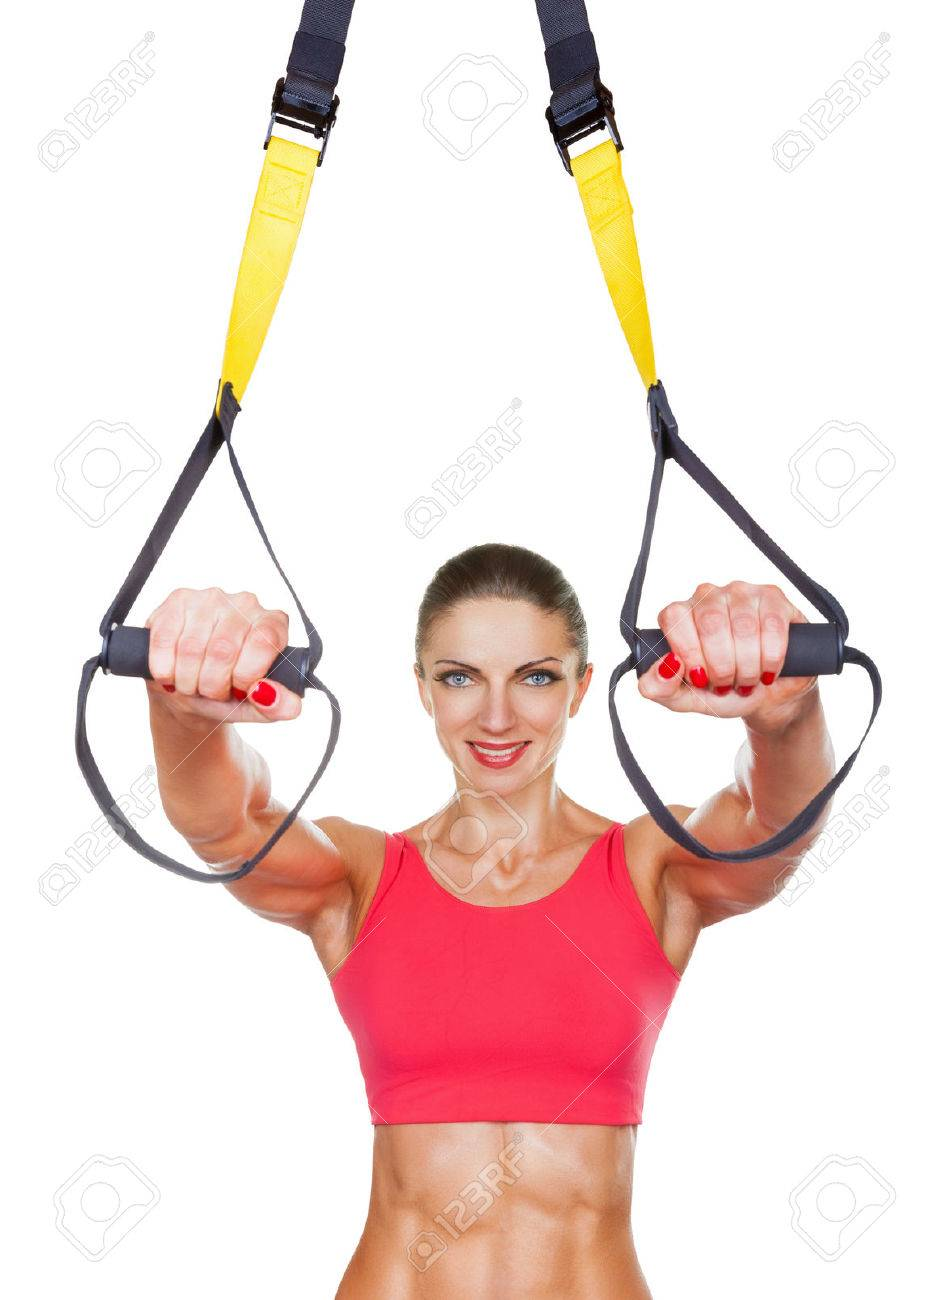 Athletic woman with functional loops for training isolated on white background - 35452497